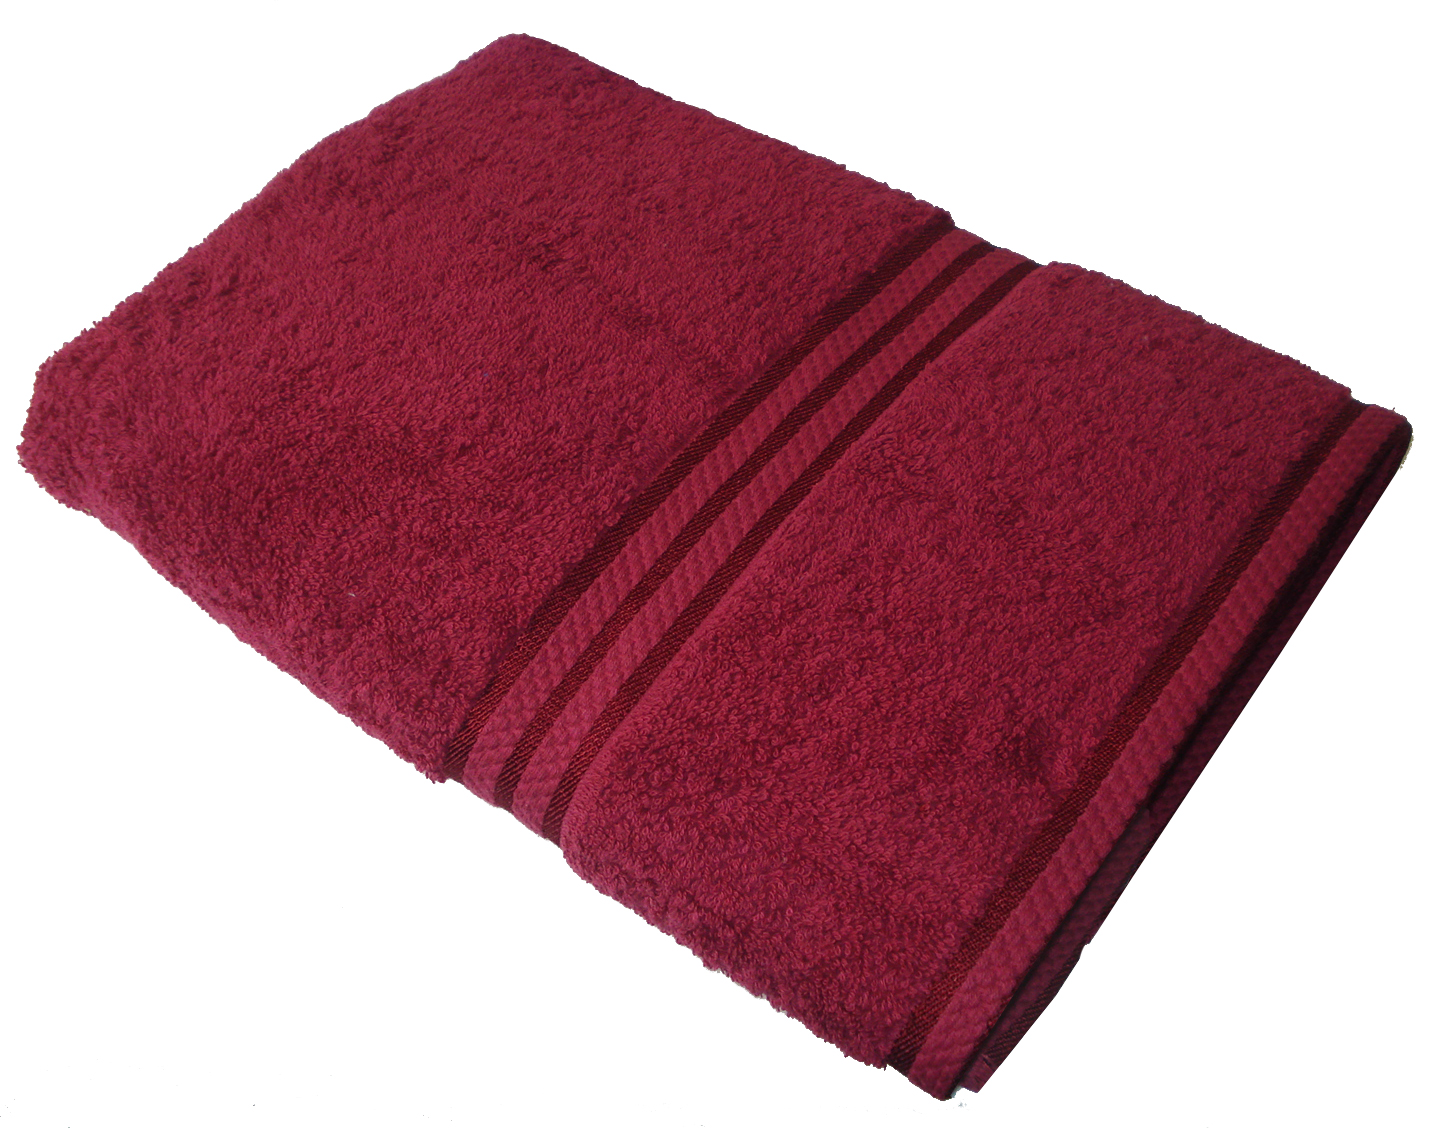 Garnet Couloured Towels